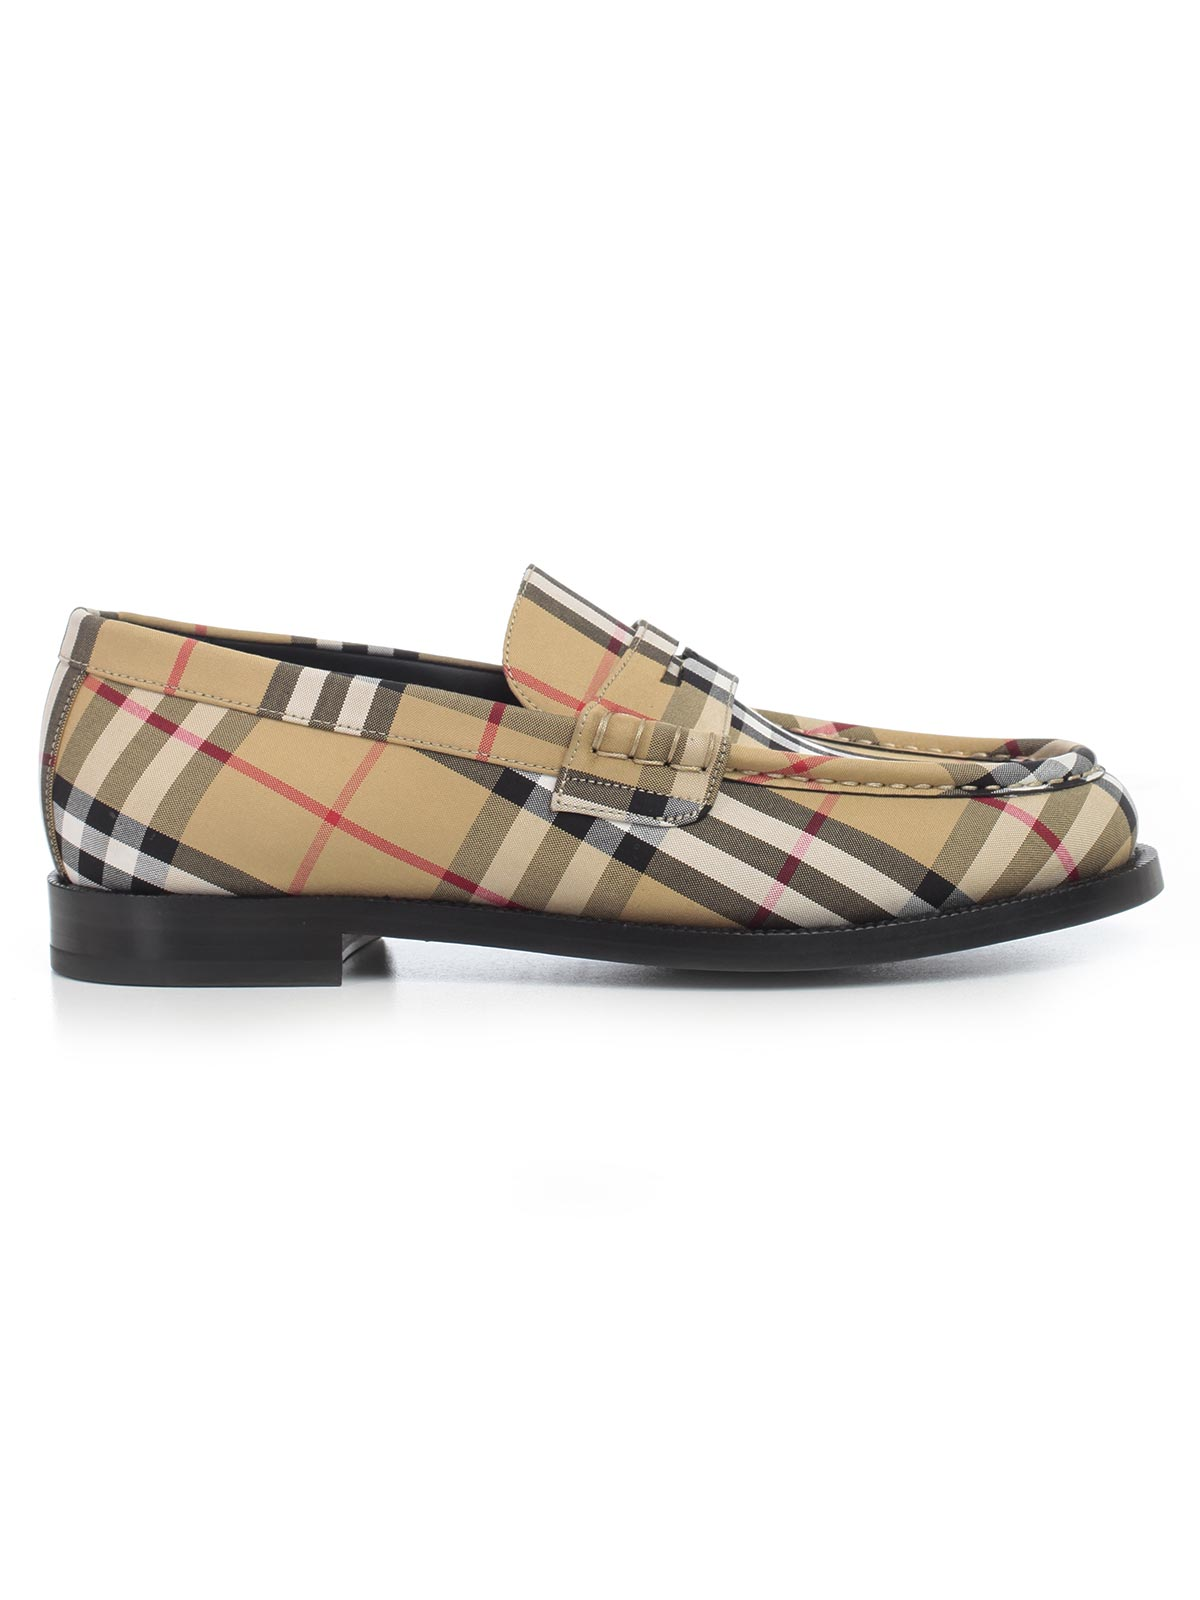 Picture of Burberry Loafers